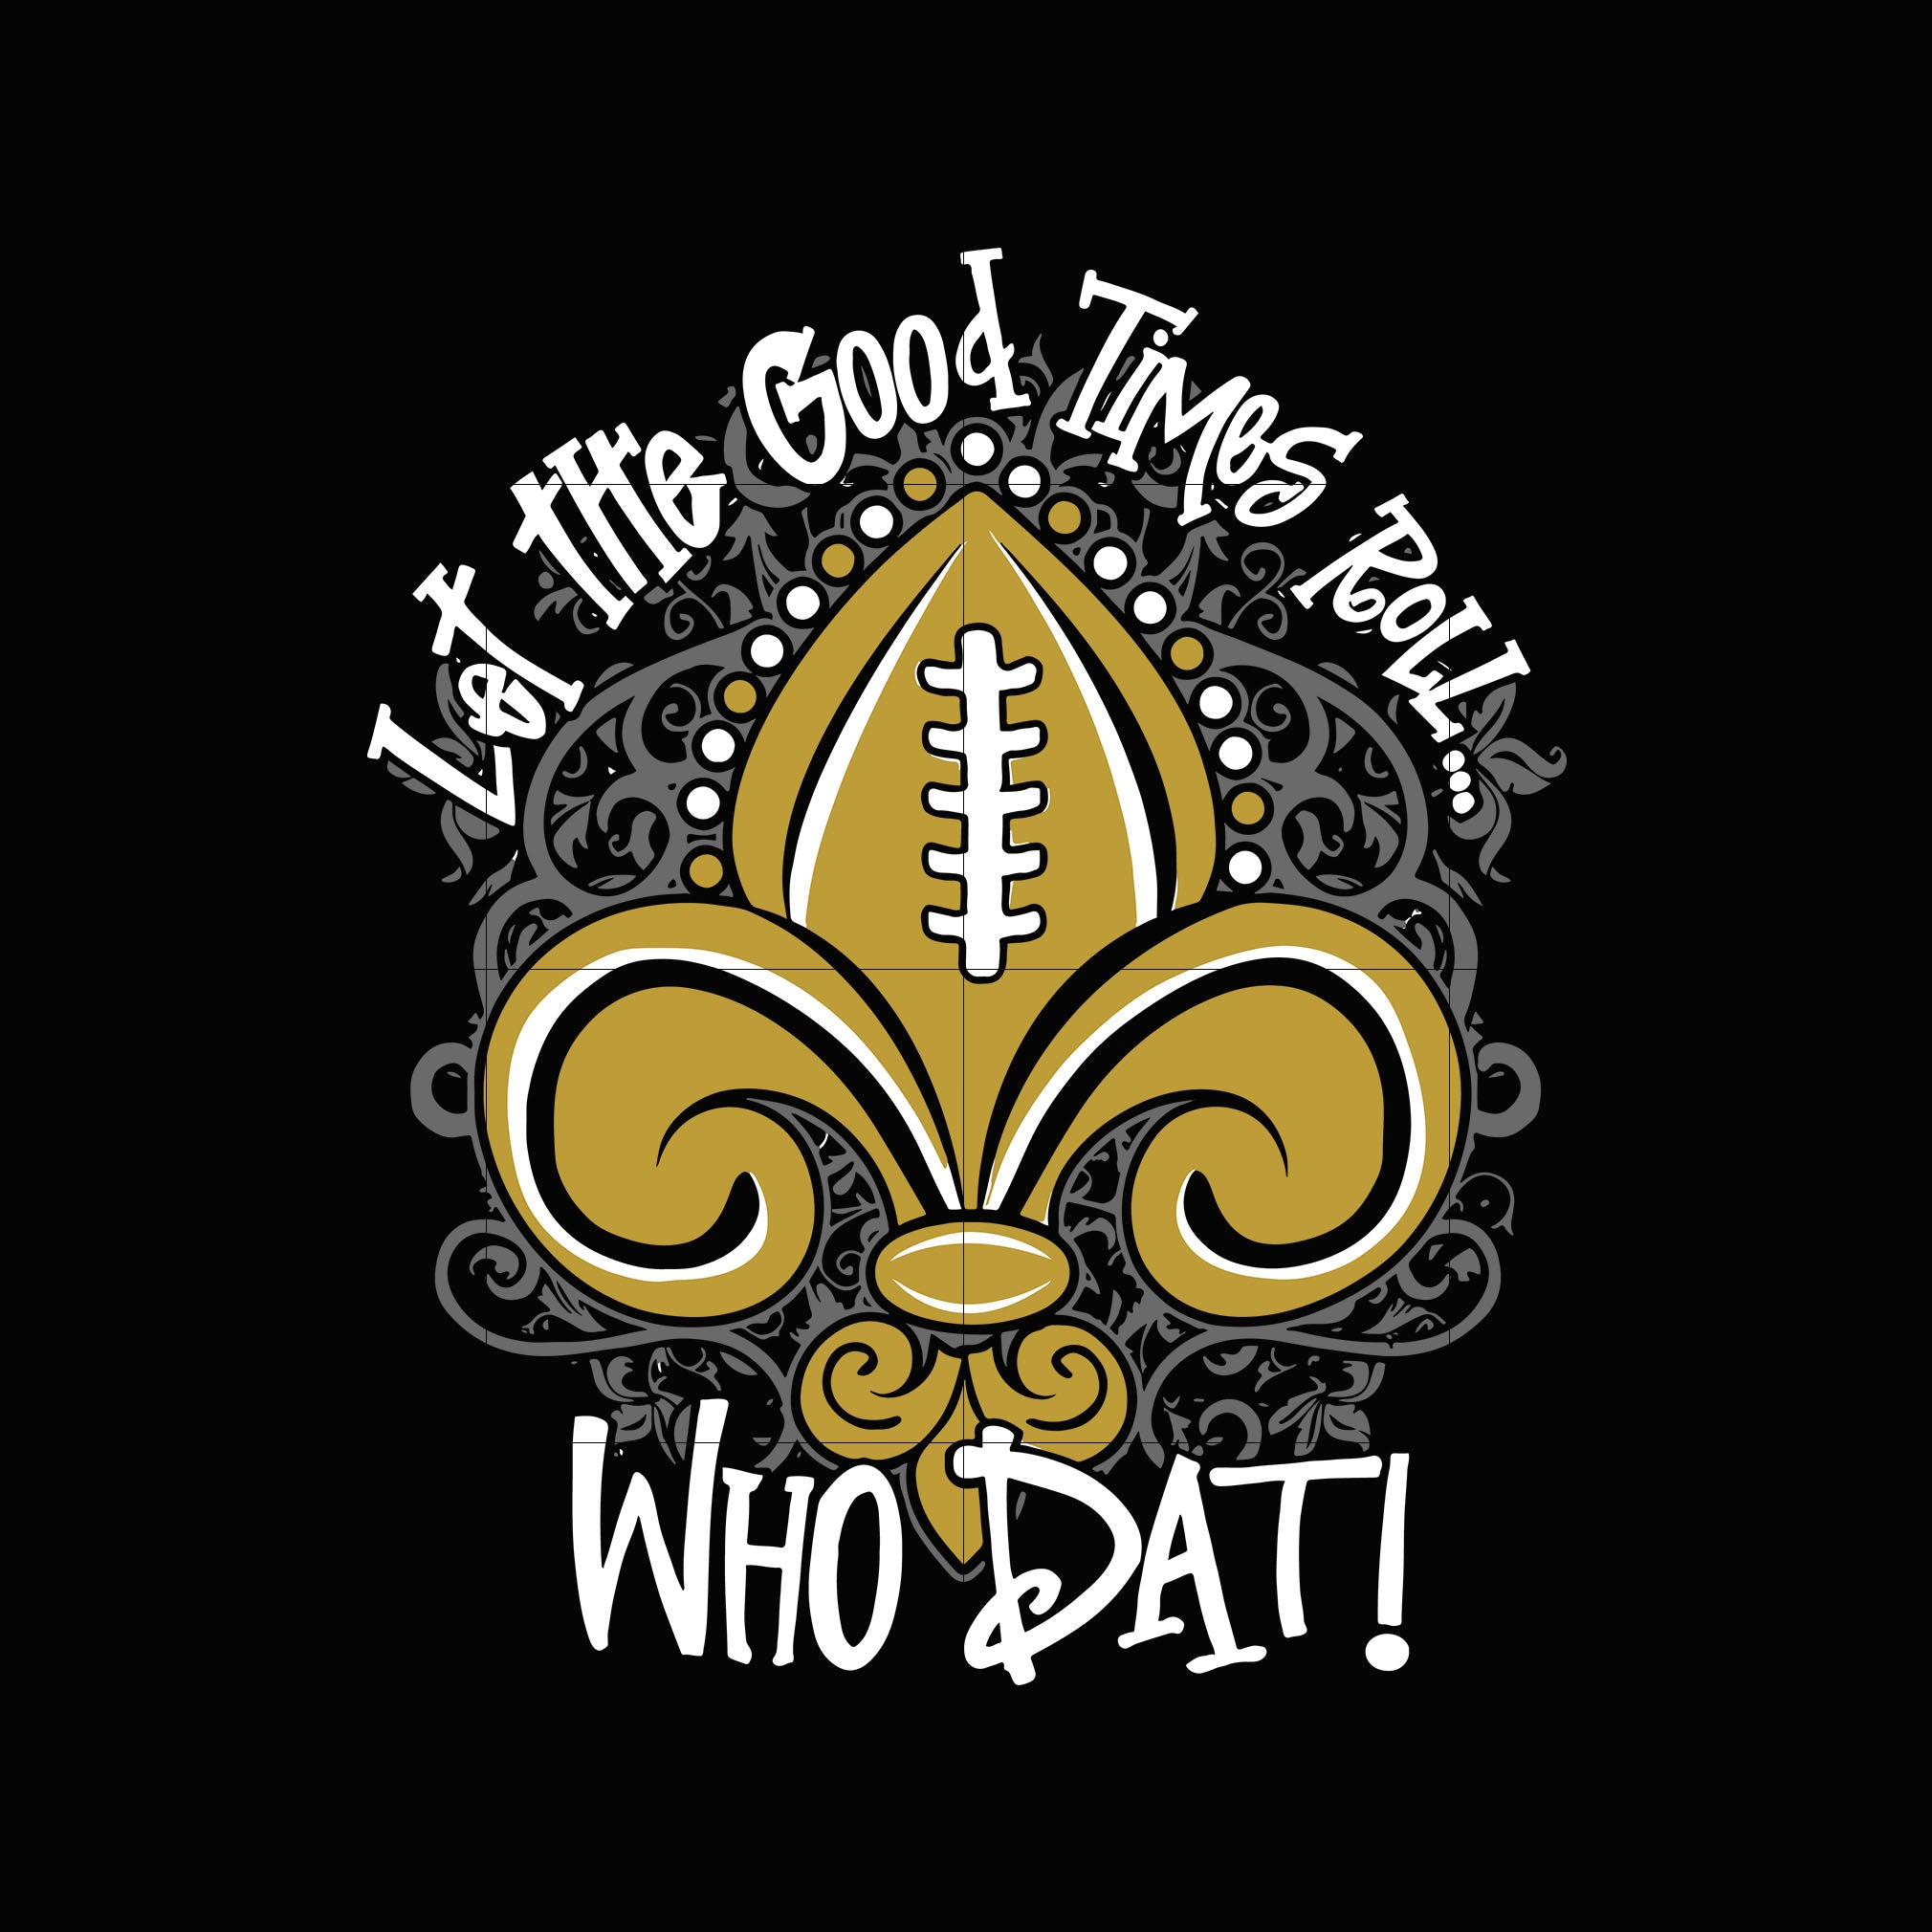 Let the good times roll who dat svg, new orleans saints svg, svg for cut